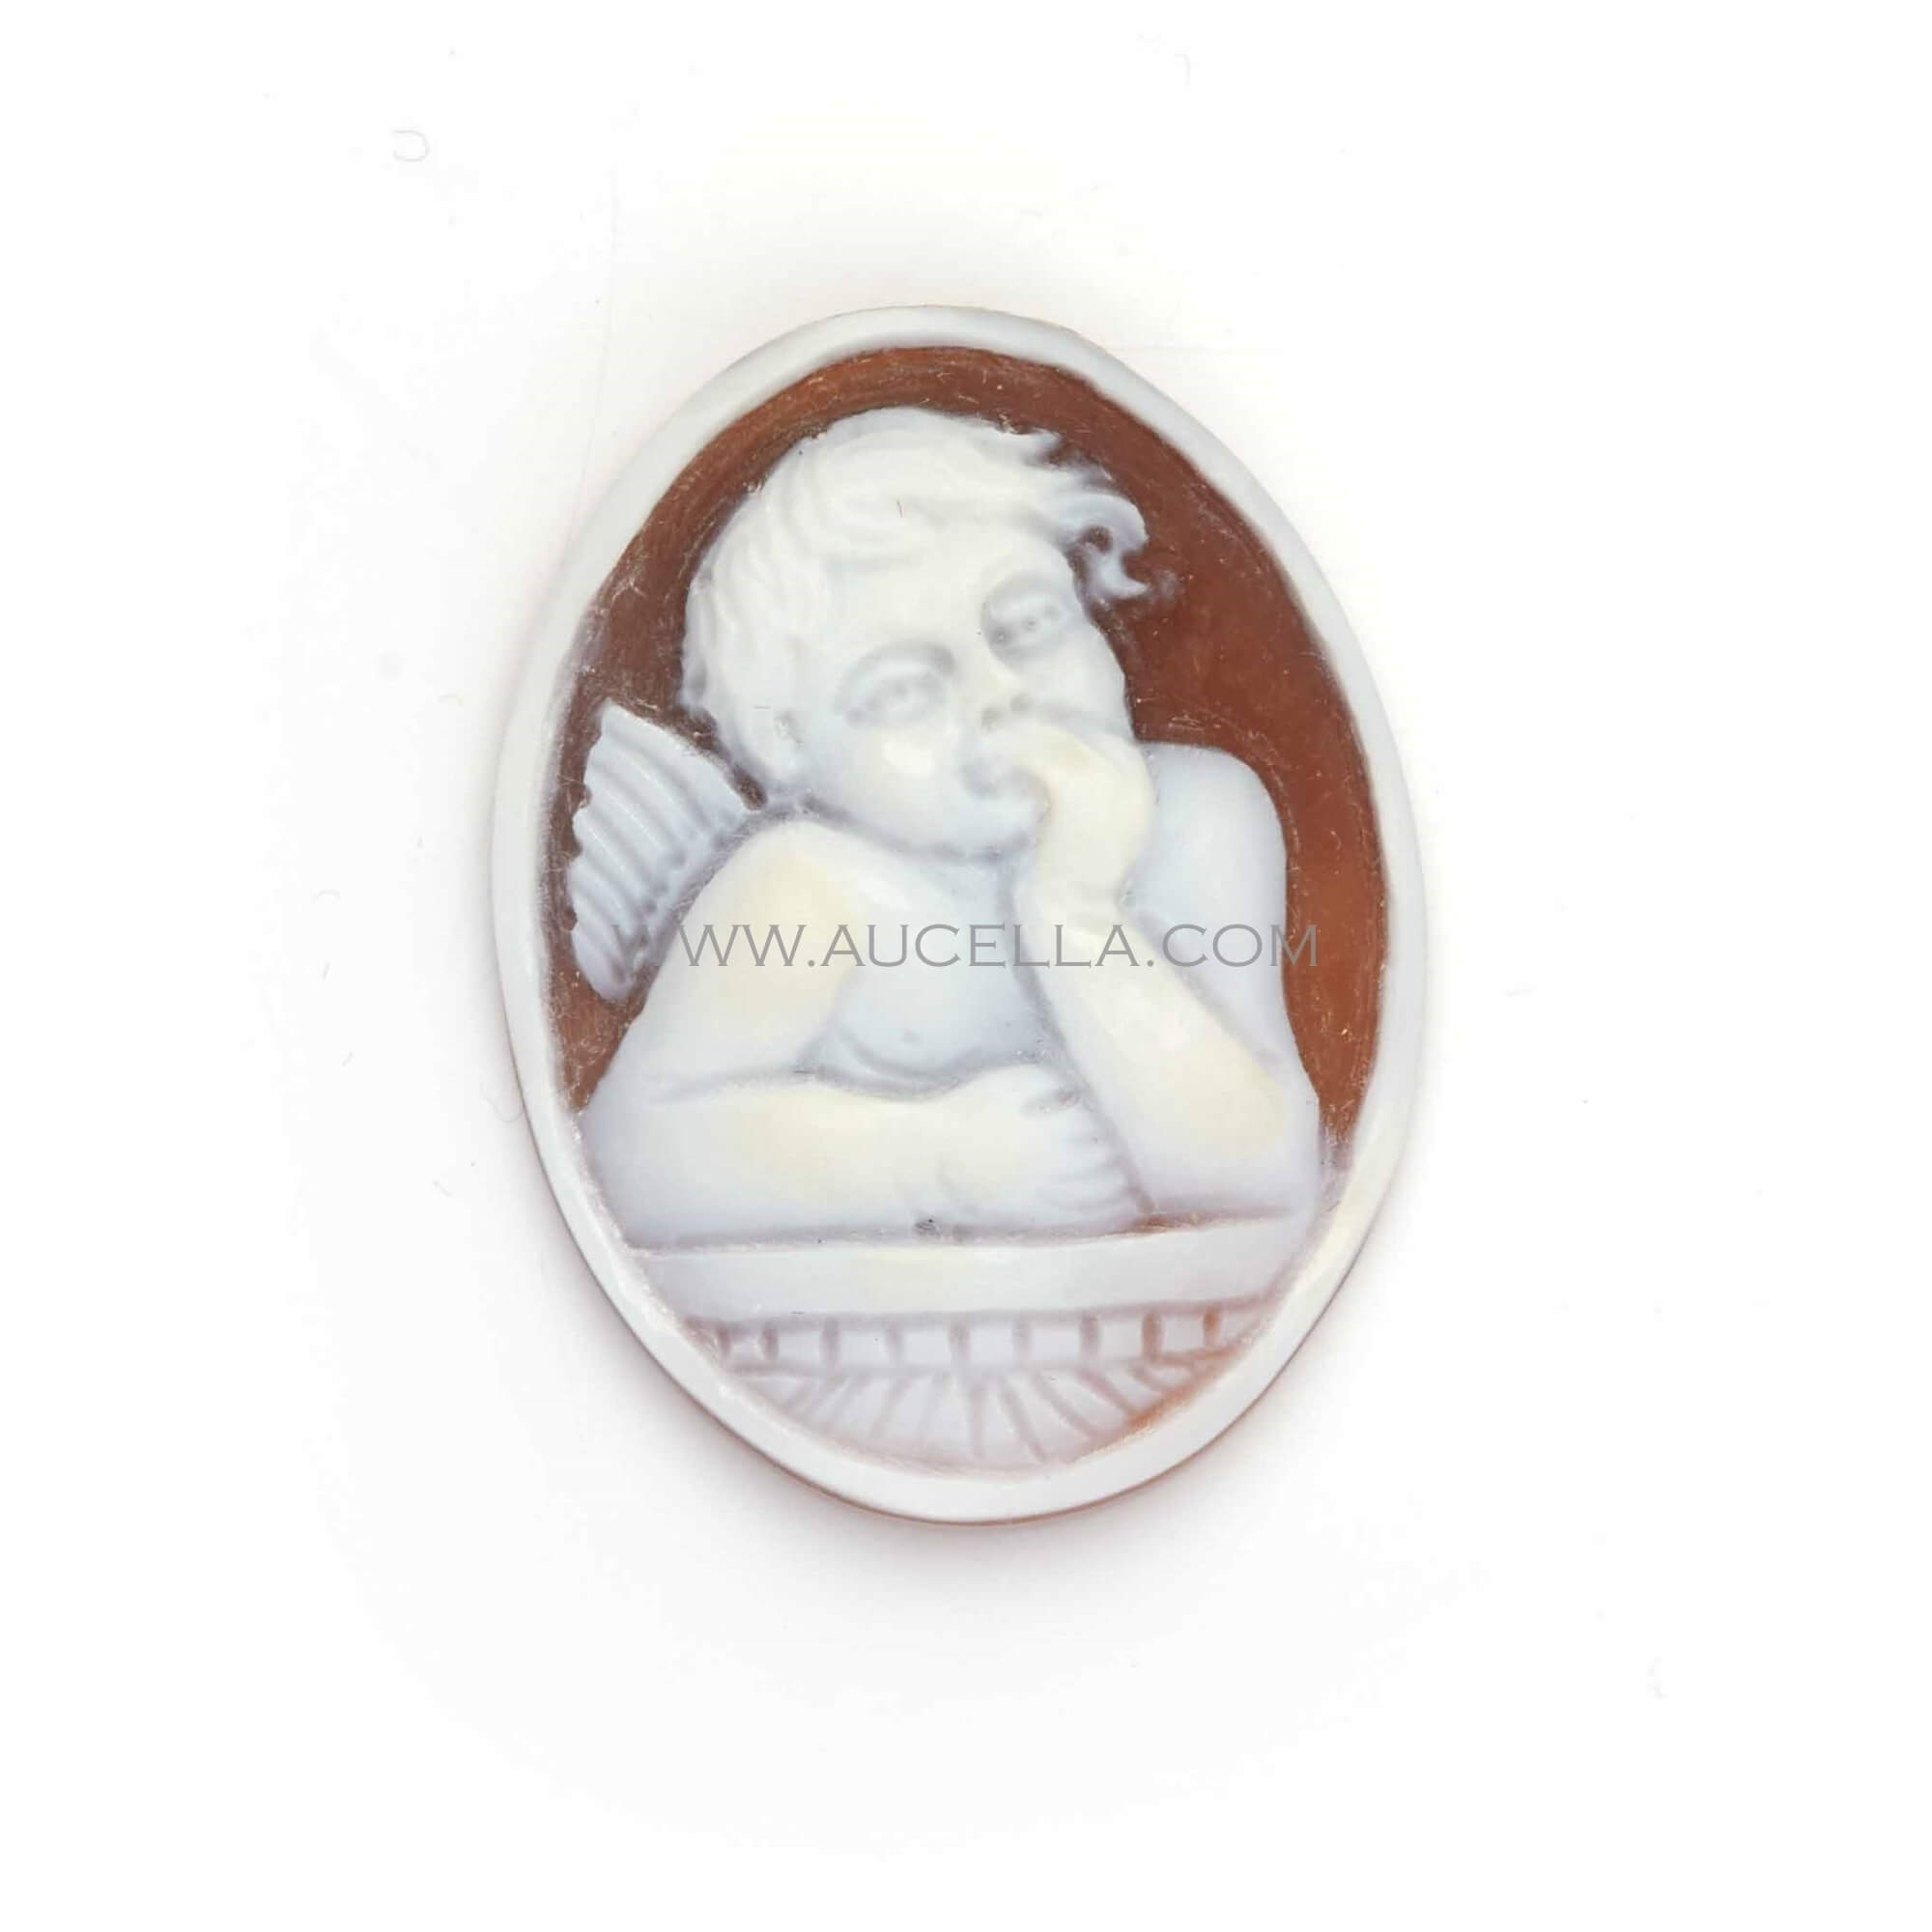 Angel on sardonix cameo